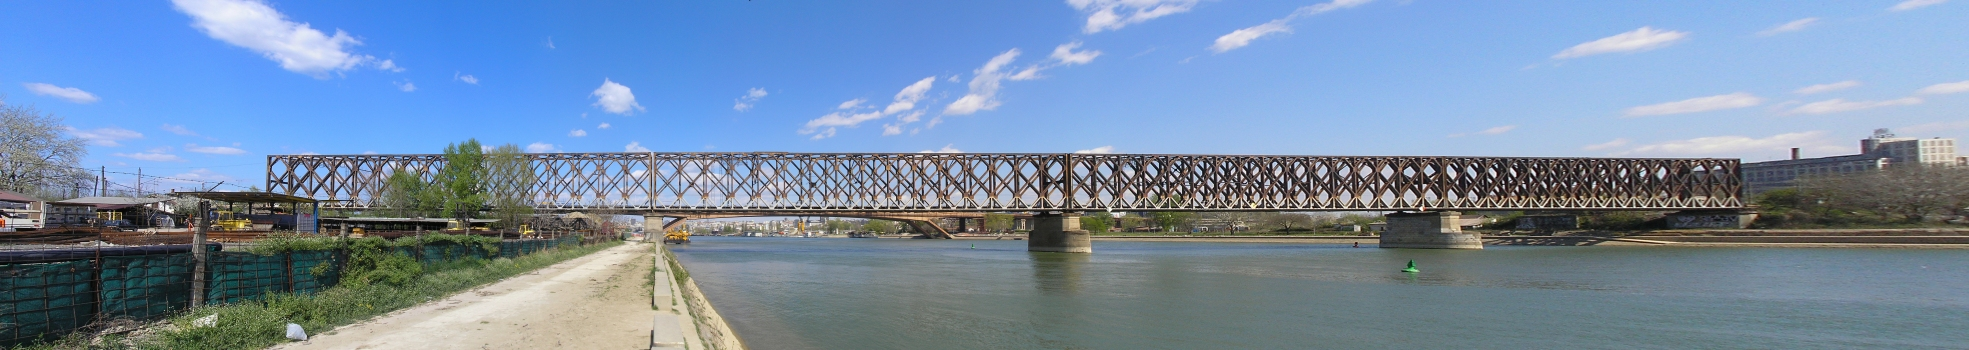 Old Sava River Rail Bridge